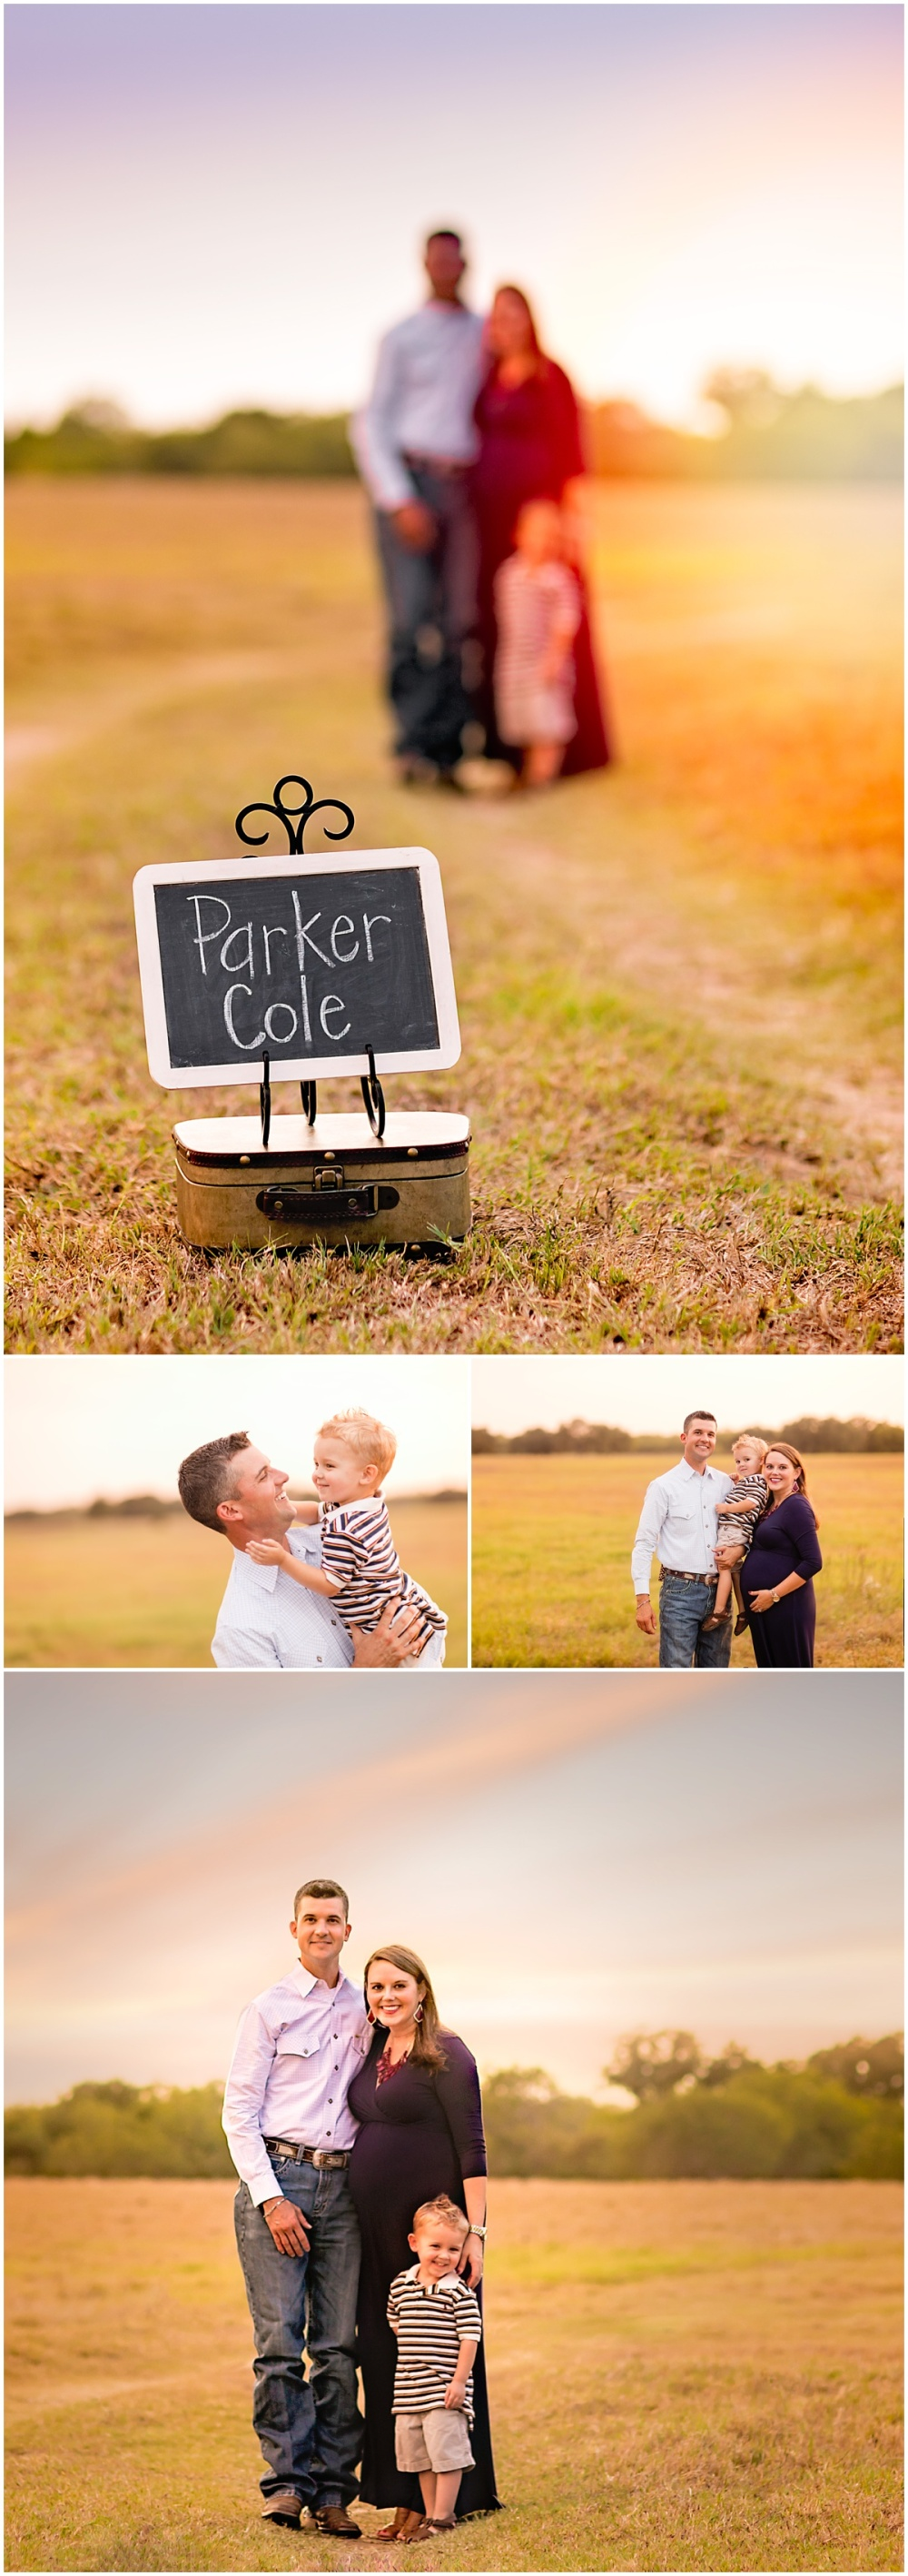 Family-Children-Portraits-Maternity-Photos-San-Antonio-Hill-Country-Texas-Carly-Barton-Photography_0008.jpg